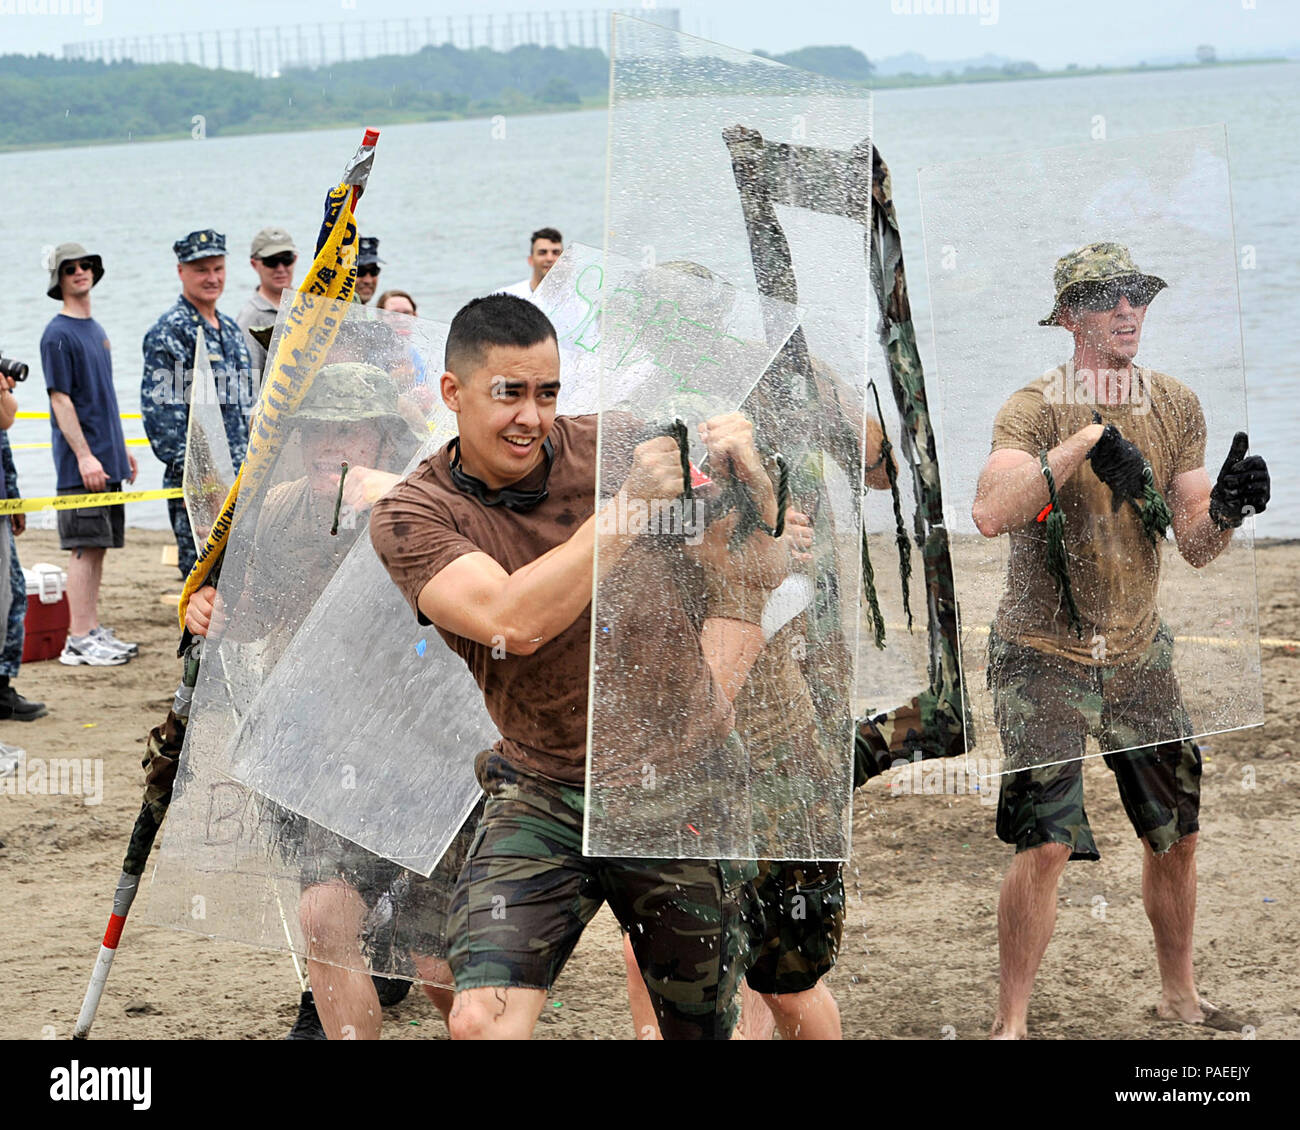 Construction Mechanic 2nd Class Nathan Breen, center, a native of Venice, Calif., and assigned to Naval Air Facility Misawa Public Works Department, shields his flag bearer from water-balloon fire during the 2013 Navy Misawa Boat Regatta, Aug. 16, 2013. Breen and his fellow Seabees took part in NAF Misawa's annual, lighthearted regatta, which calls for each team to build a vessel from non-boating materials. The teams take turns racing around Misawa Air Base's Lake Ogawara, and then must plant their vessel's flag on the opposing team's beach, while attempting to avoid water-balloon fire. Misawa - Stock Image